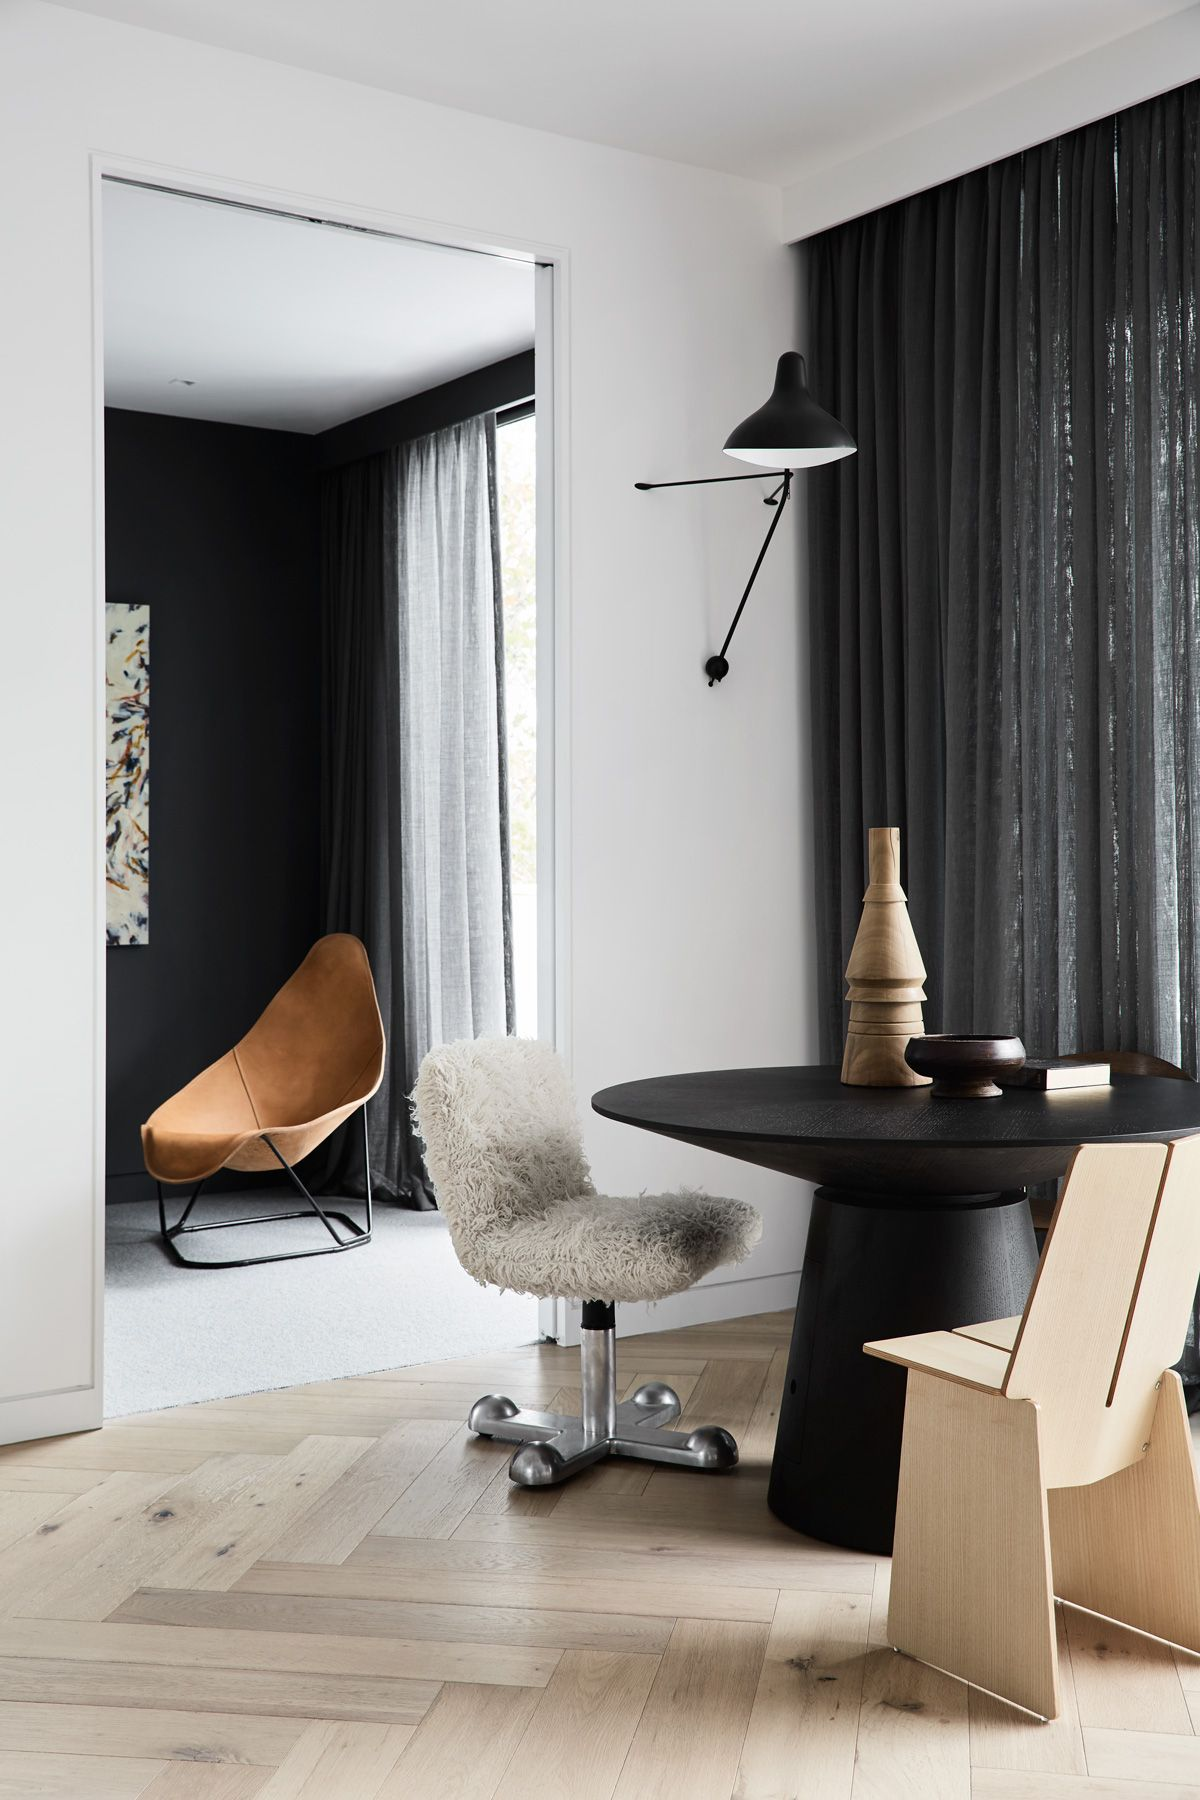 South yarra residence is a minimalist interior design project located in melbourne australia designed by we are huntly